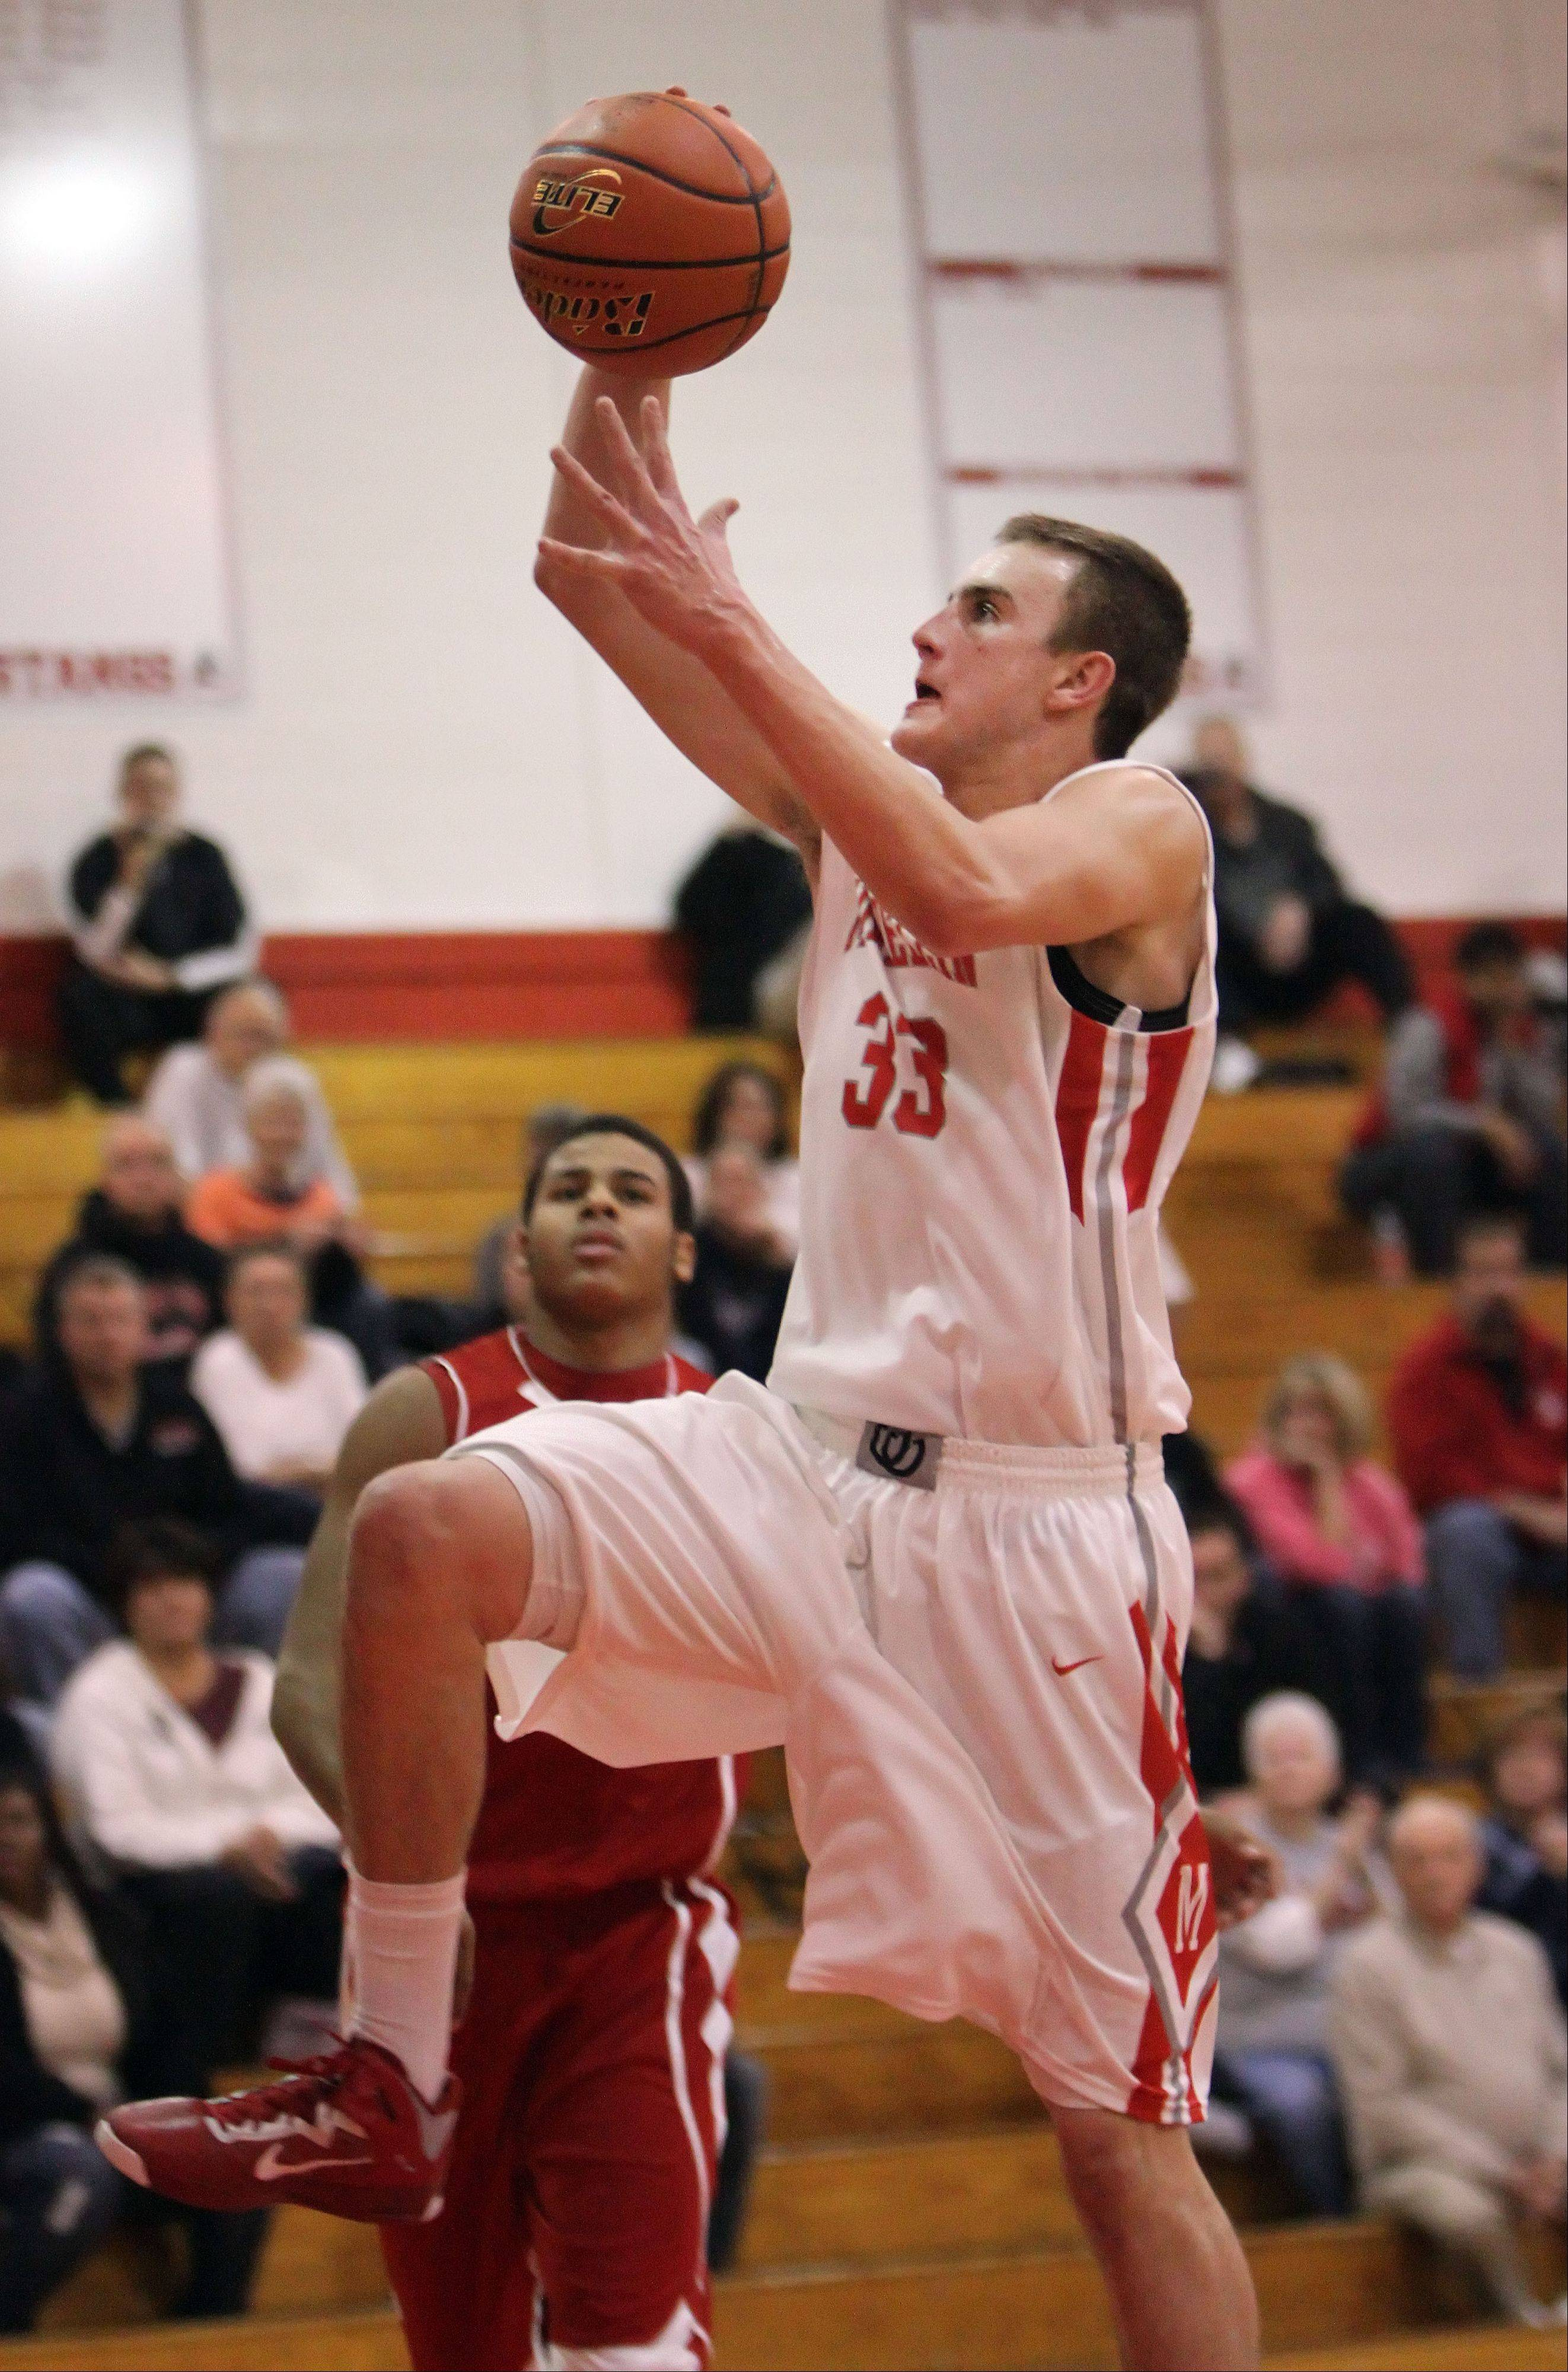 Mundelein's Sean O'Brien drives in for a dunk during their game against Lakes Tuesday night at Mundelein.